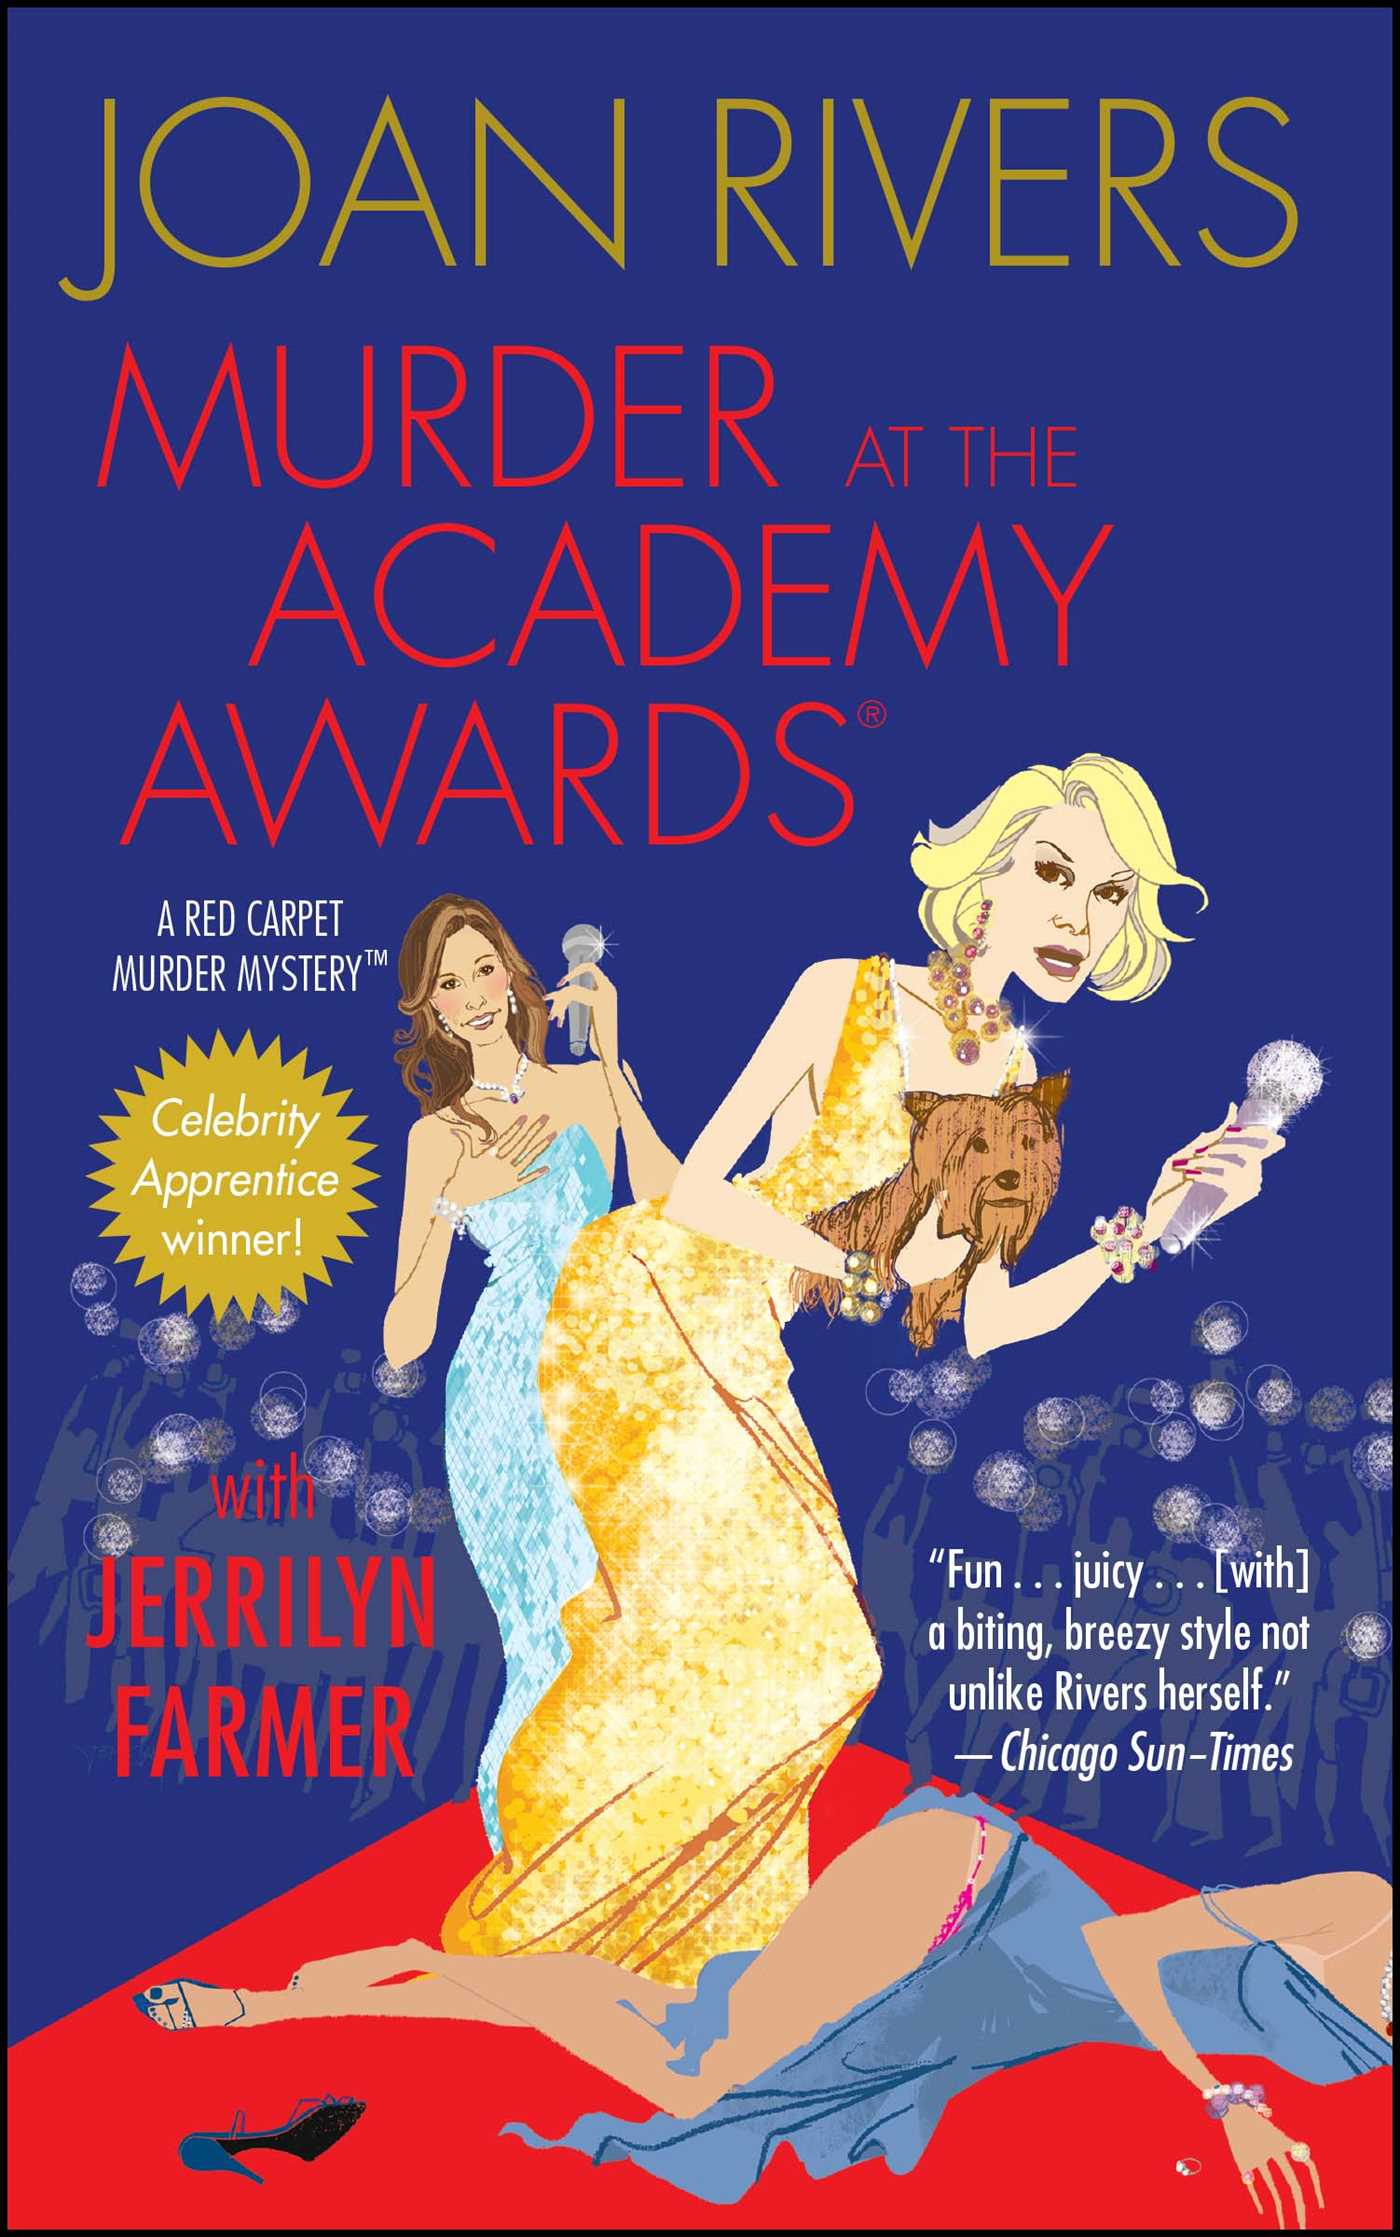 Murder at the academy awards r 9781439123676 hr